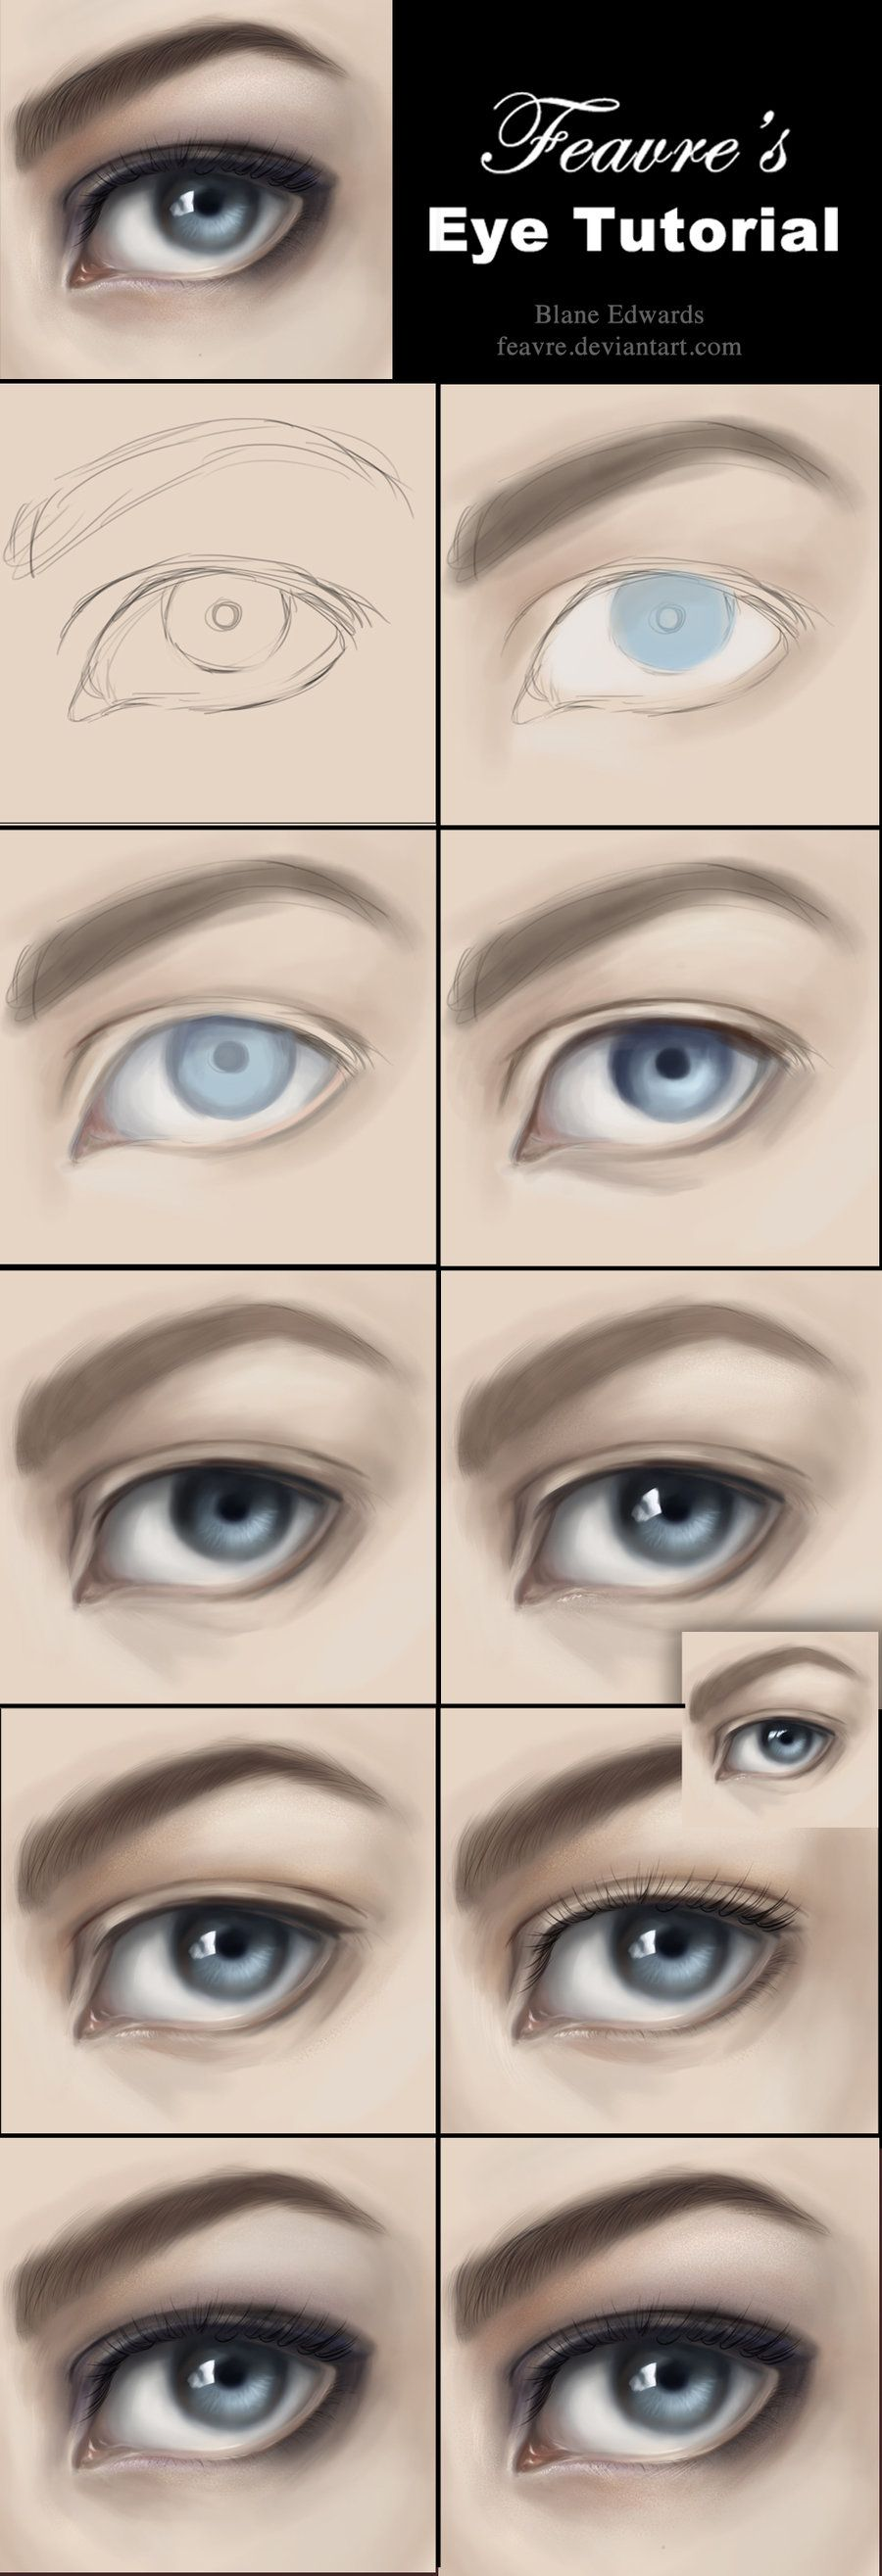 How to paint realistic eyes tutorial by feavre on deviantart how to paint realistic eyes tutorial by feavre on deviantart ccuart Gallery